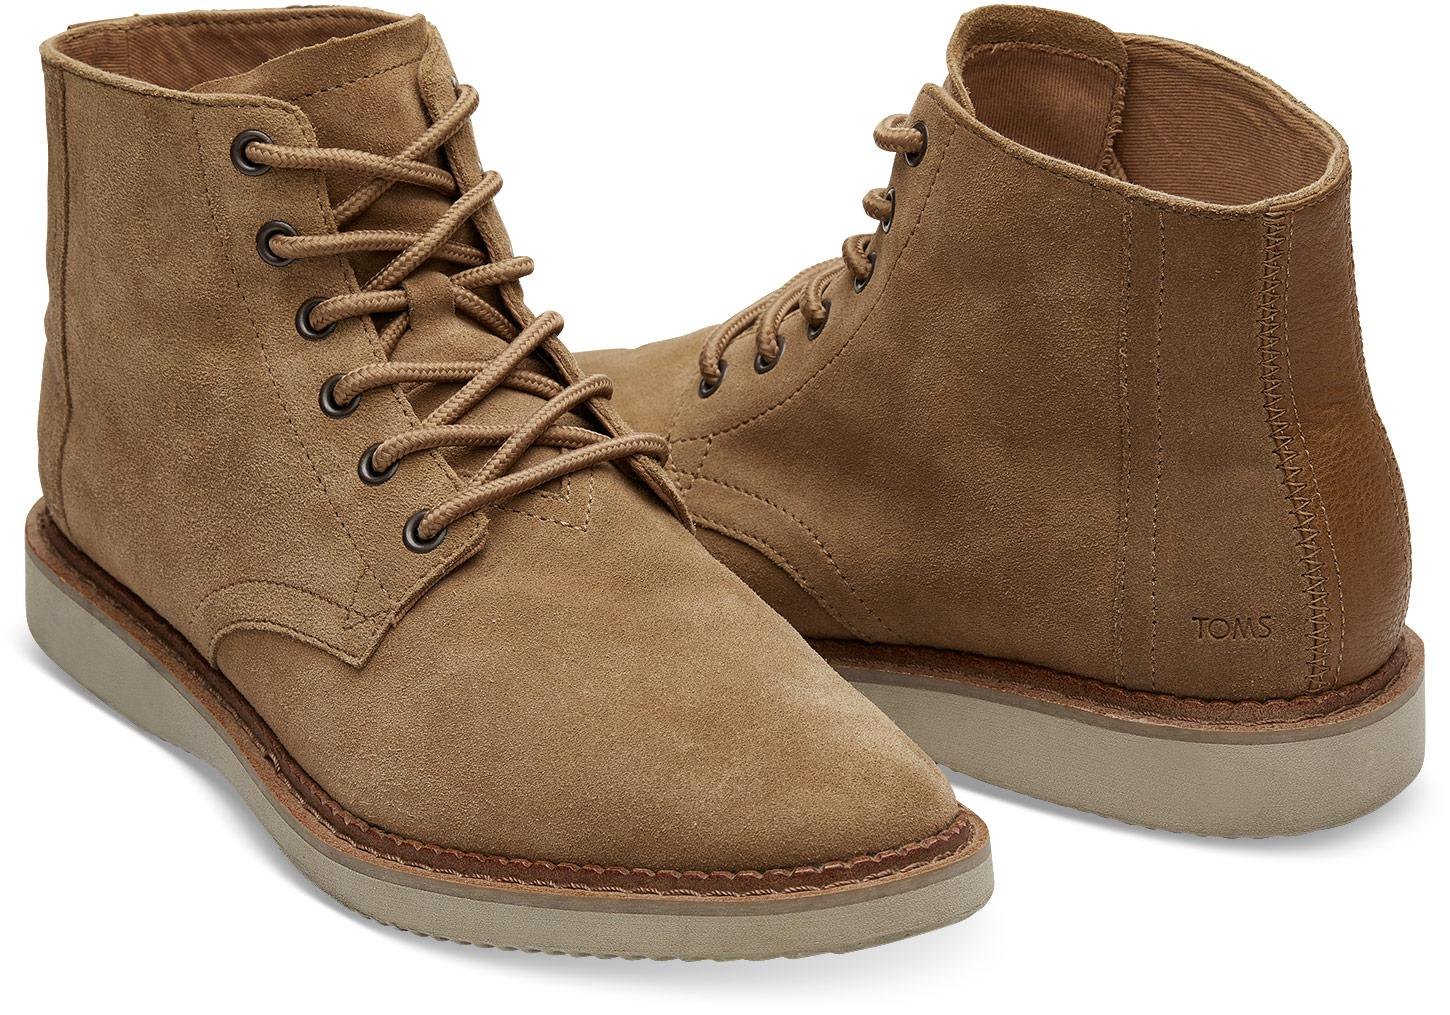 e767d68f143 TOMS - Brown Toffee Suede Porter for Men - Lyst. View fullscreen